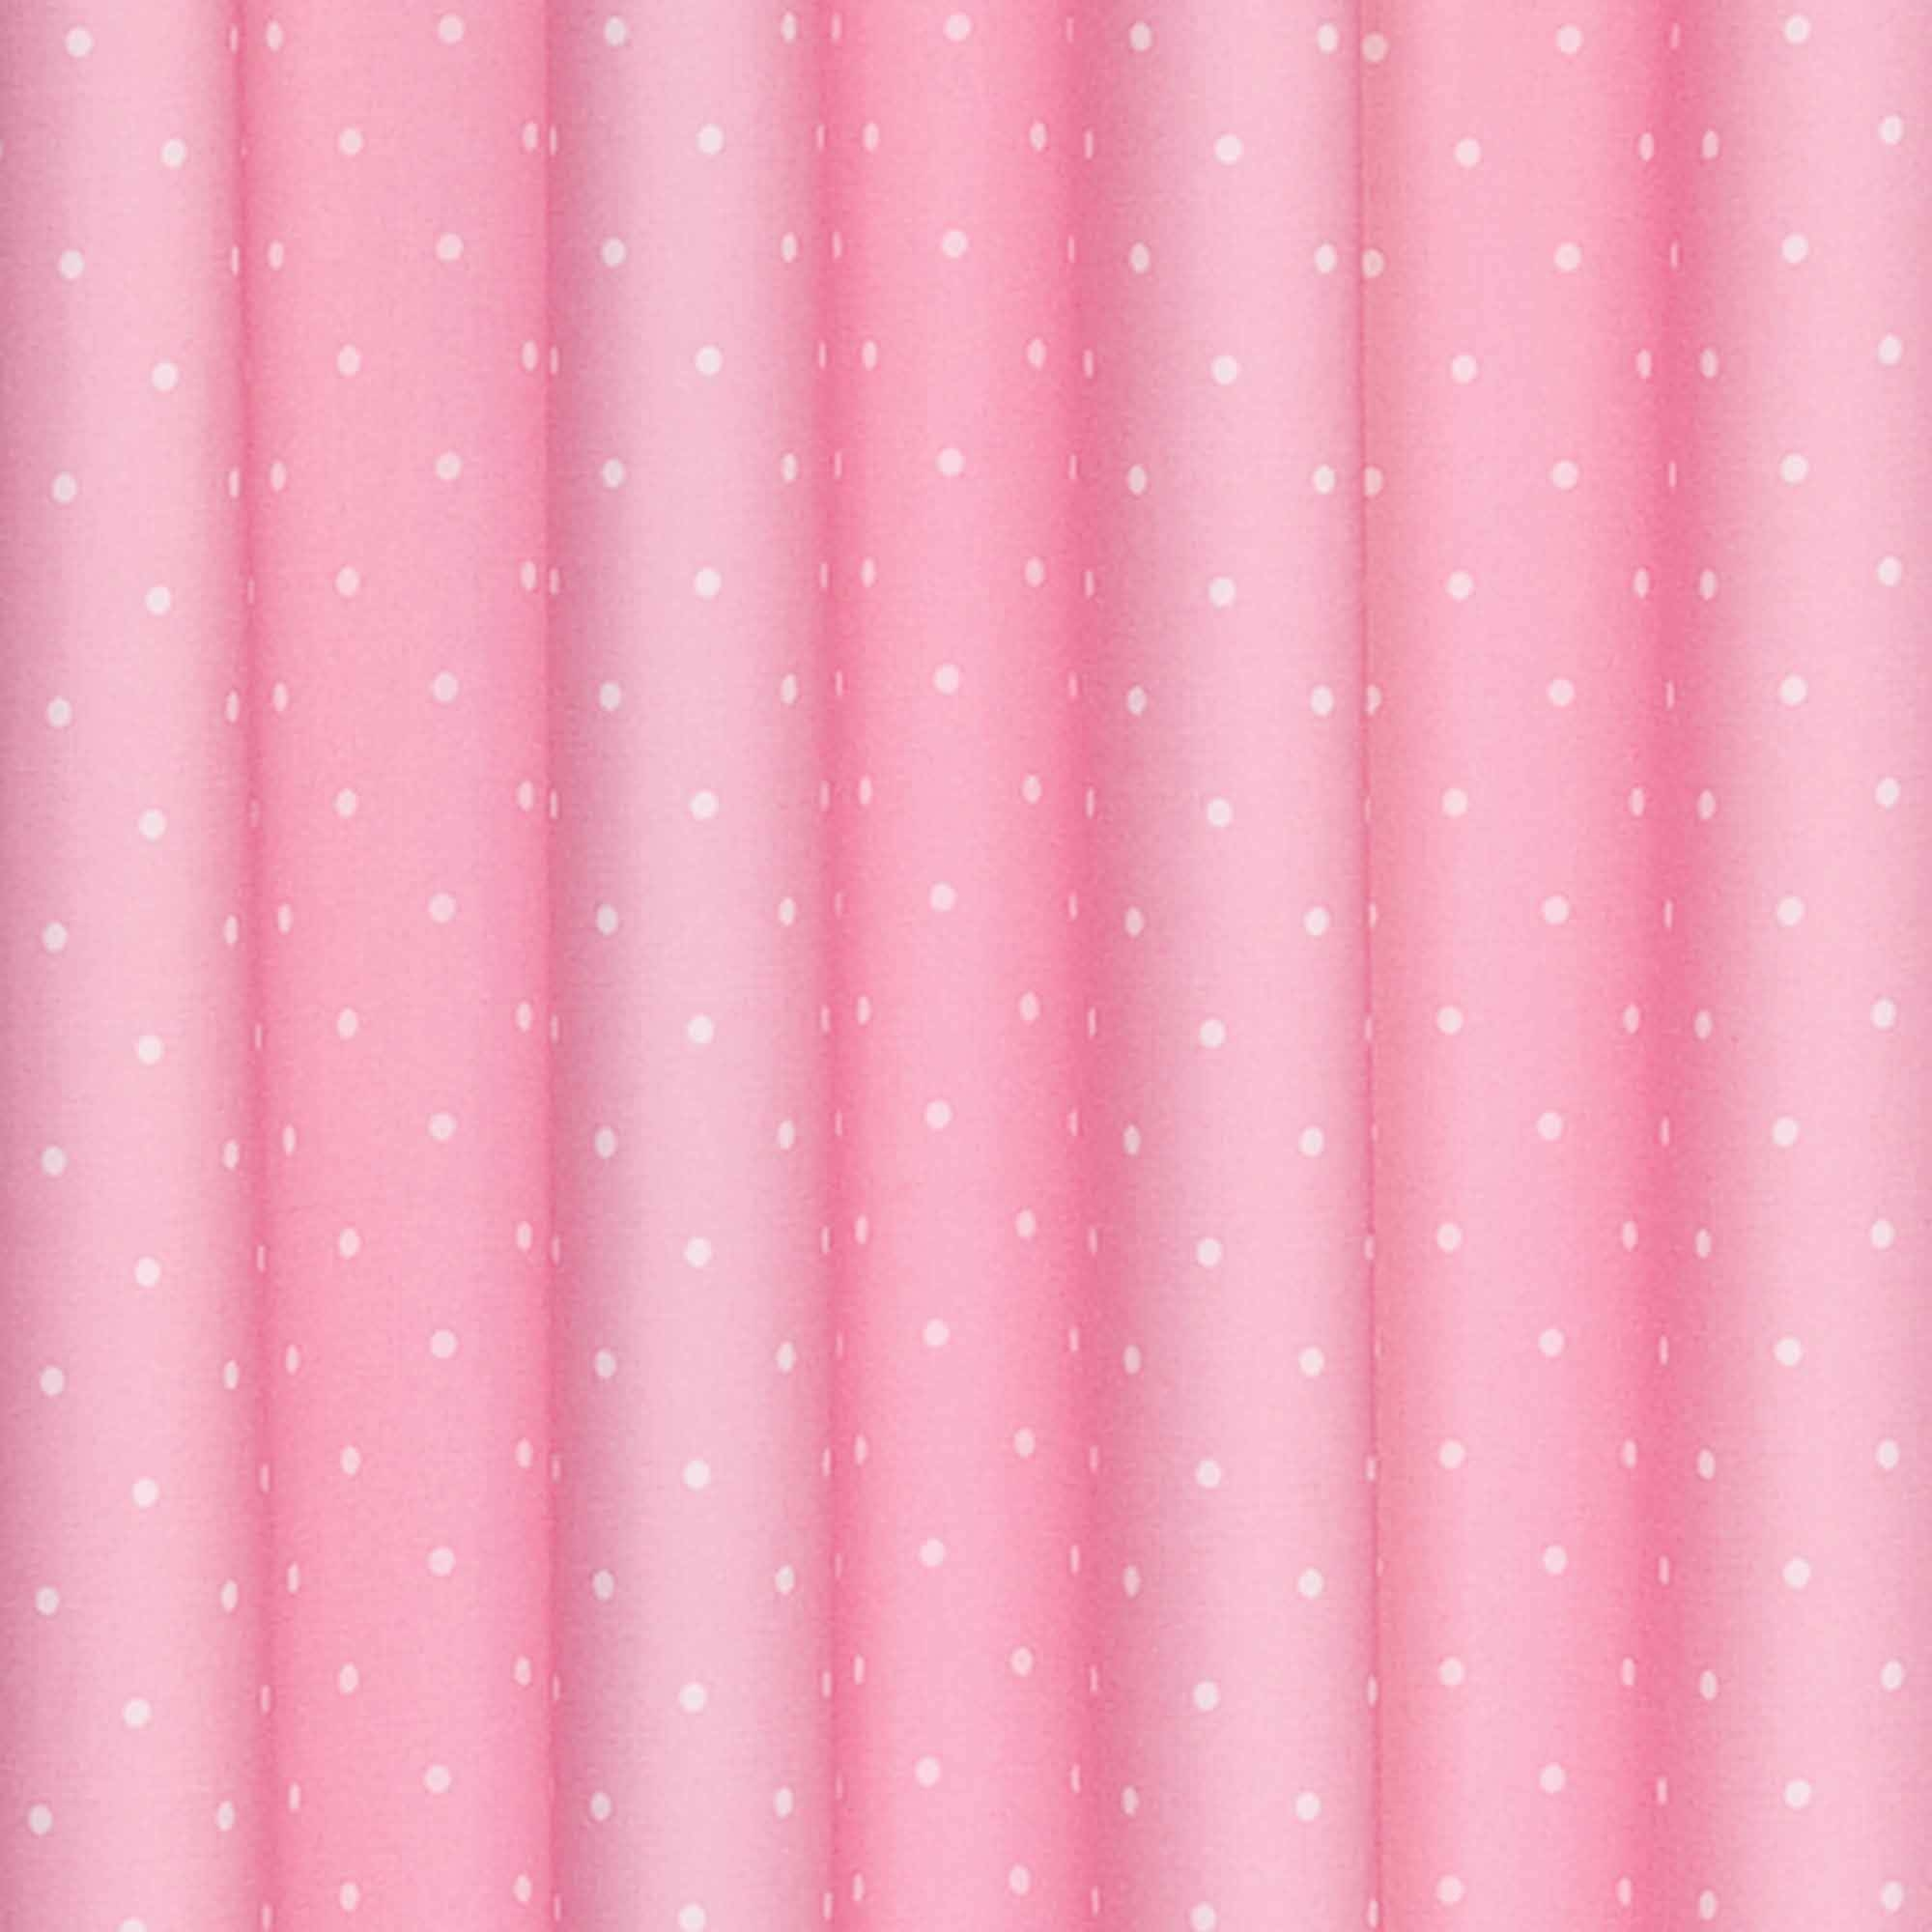 Eclipse Dots Blackout Thermal Girls Bedroom Curtain Panel Inside Navy And White Polka Dot Curtains (Image 12 of 25)